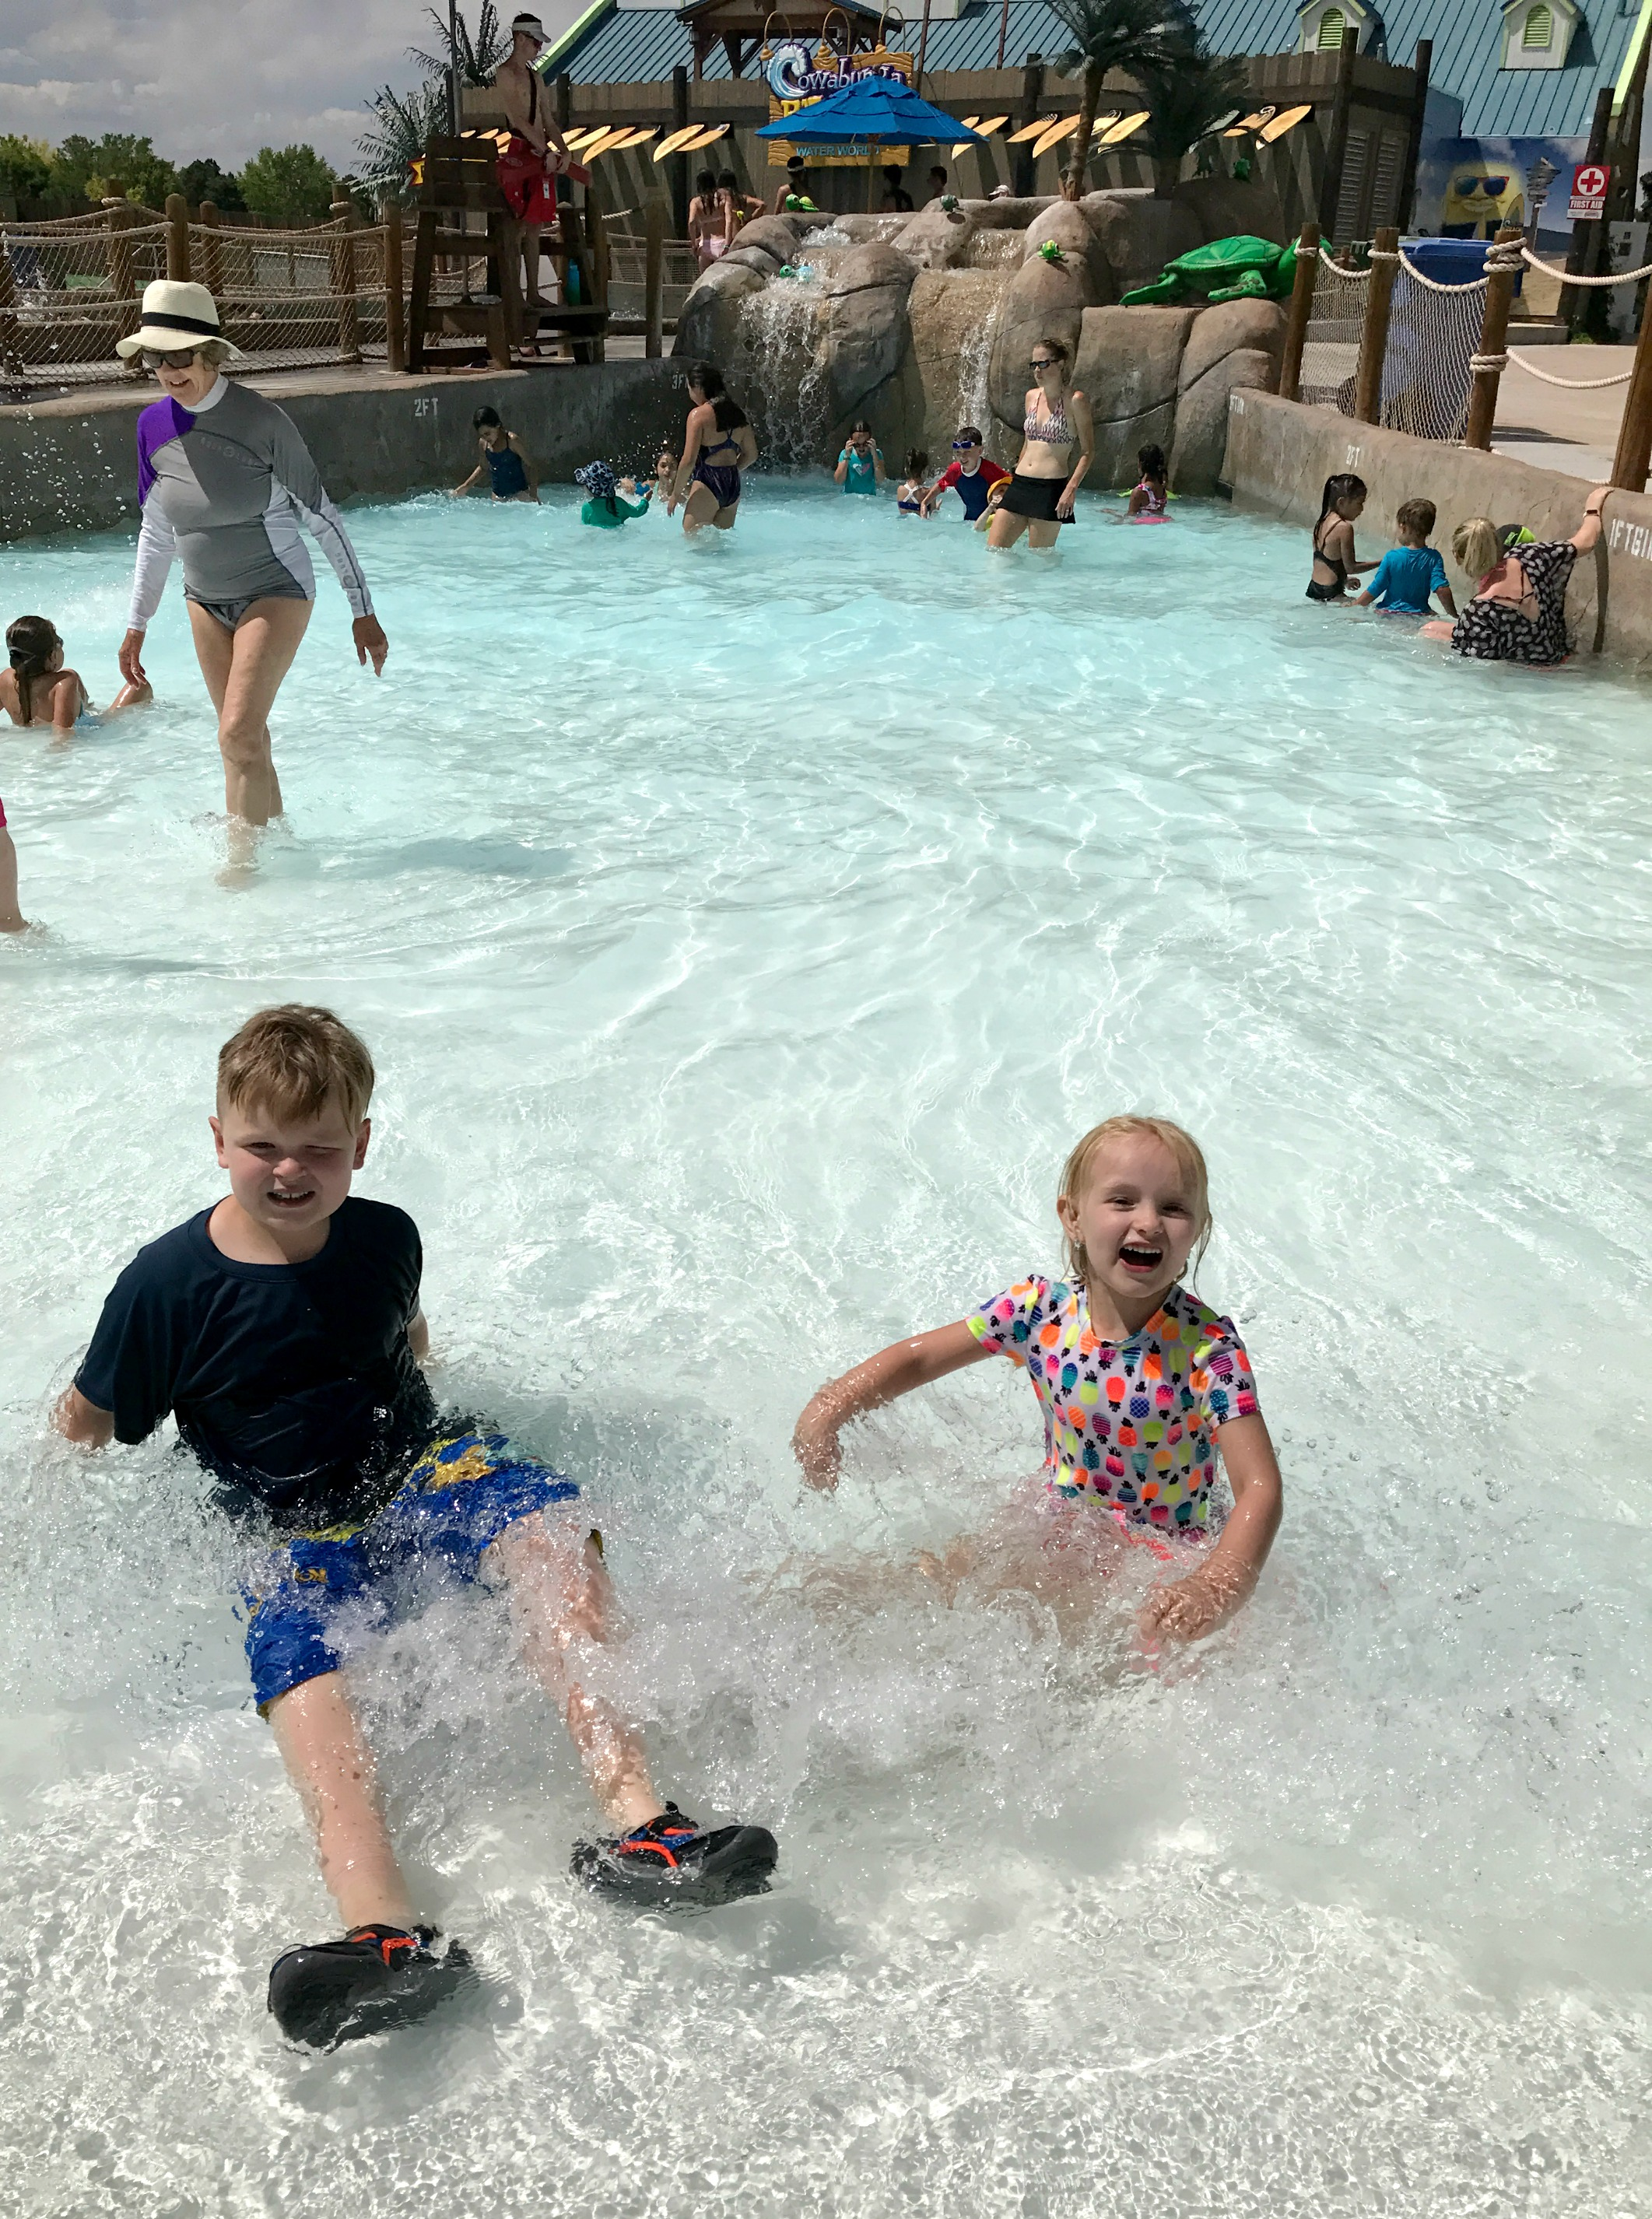 Reasons To Make Water World Your Summer Tradition, Water World Colorado, tips for visiting Water World Colorado, Water Parks in Colorado, Water World, Tips for visiting Water World, Water World Denver, Summer activities in Colorado